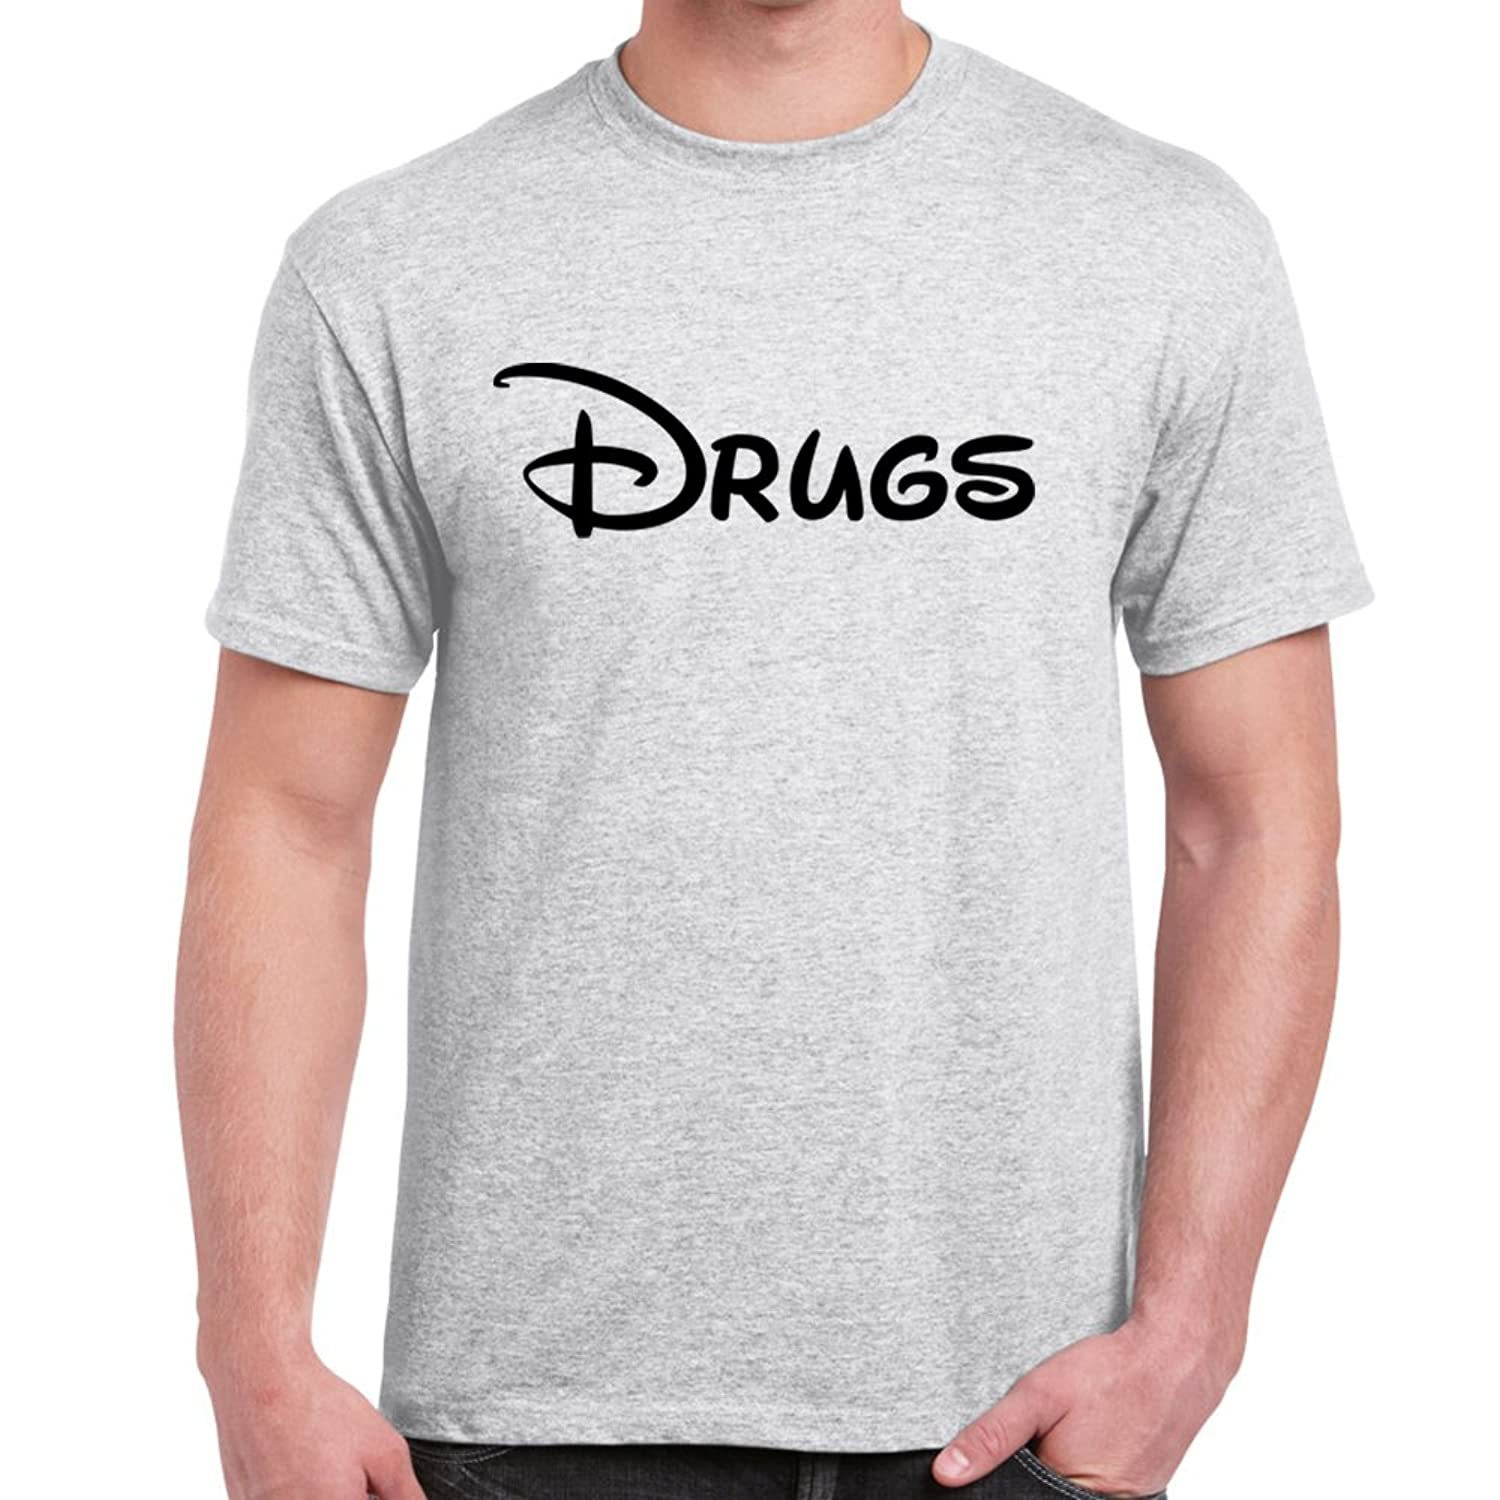 Periodic table slogans images periodic table images amazon mens funny tshirts drugs disney style t shirts funny amazon mens funny tshirts drugs disney gamestrikefo Images